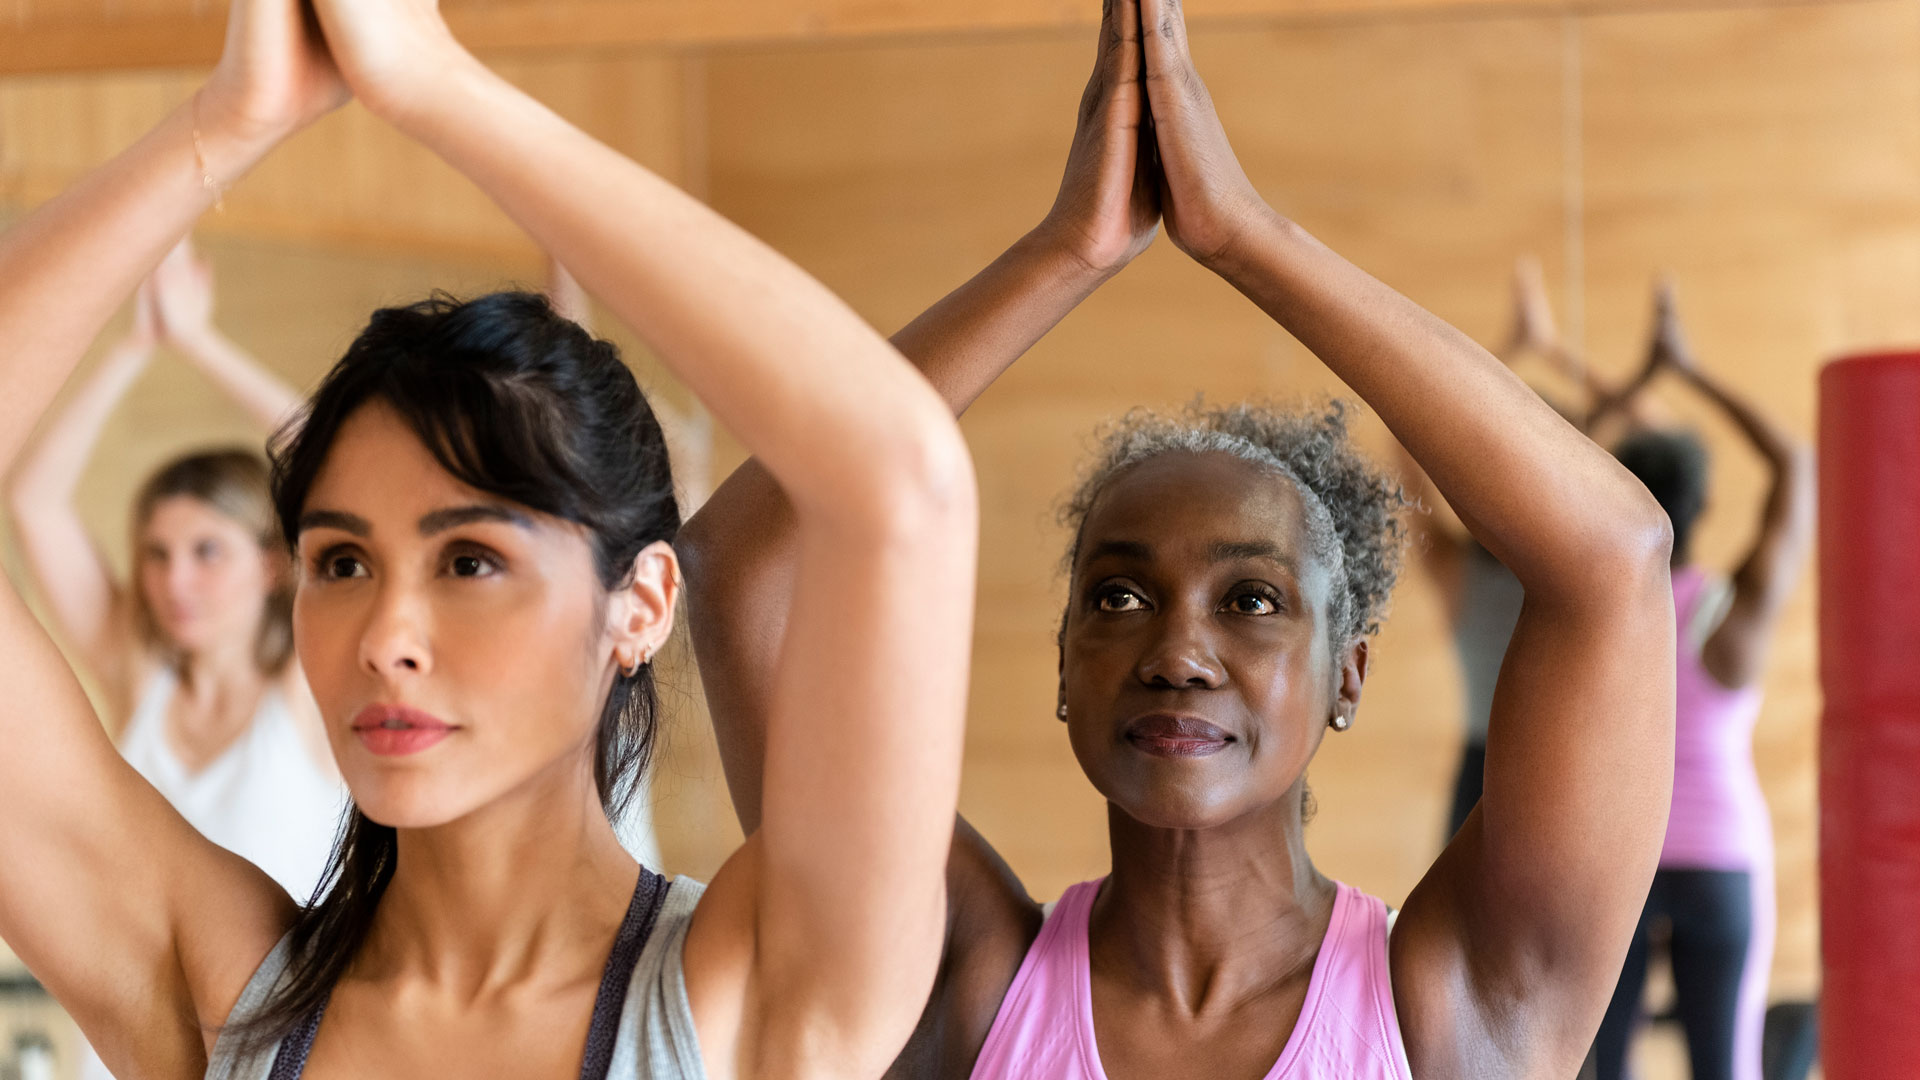 7 types of yoga: Two women, one younger and one older, raise their arms in a yoga pose